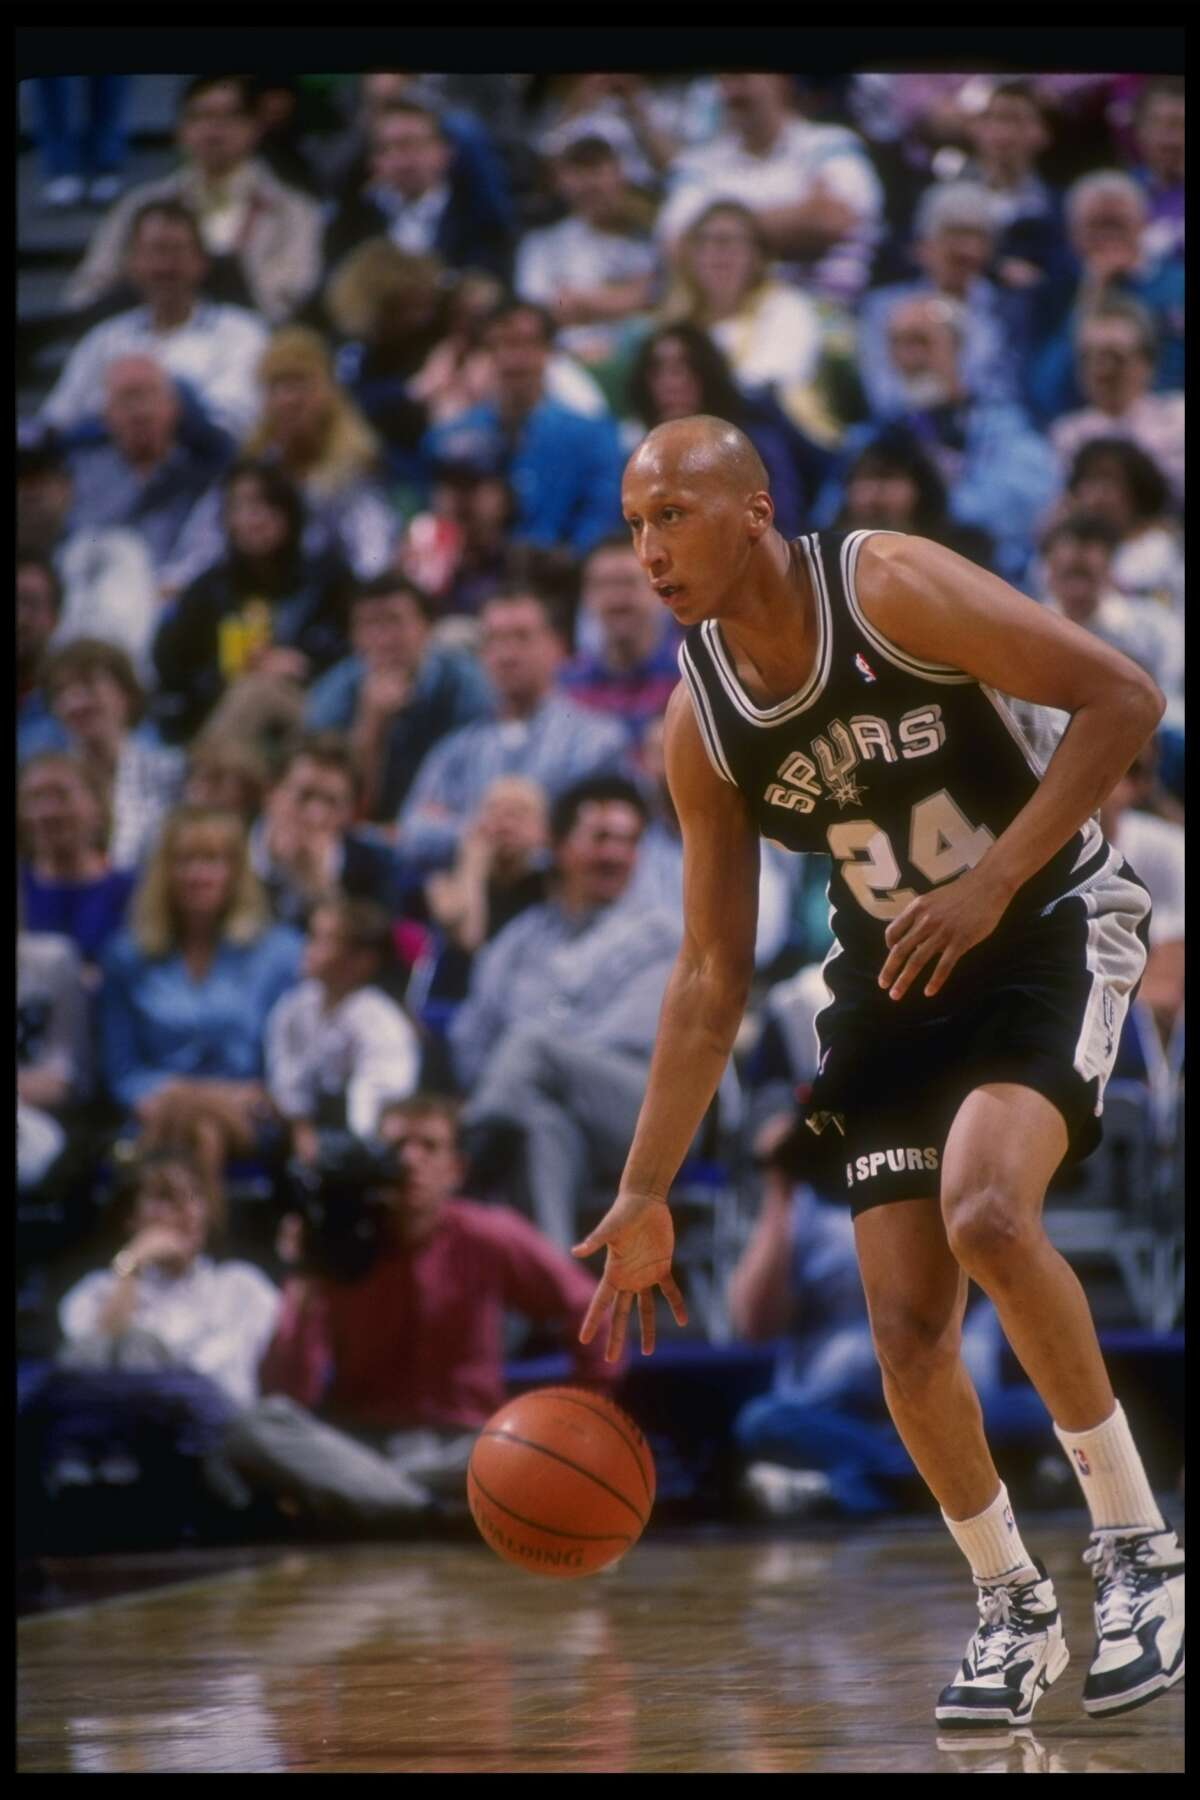 Guard Lloyd Daniels of the San Antonio Spurs moves the ball during a game against the Utah Jazz at the Delta Center in Salt Lake City, Utah